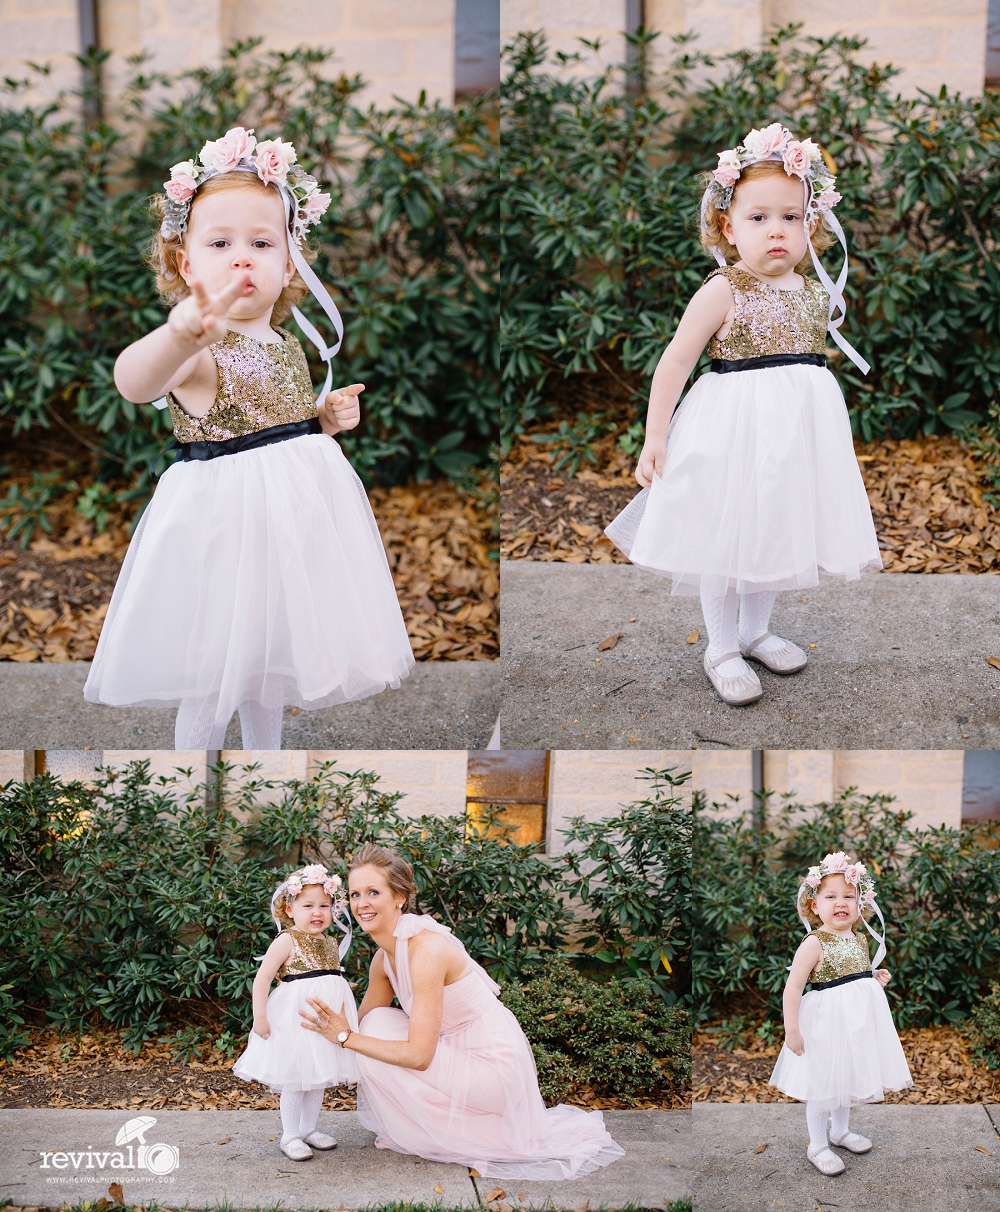 Sarah + Lee: A Modern Fairytale Wedding at Moretz Mills, Hickory, NC Photos by Revival Photography Hickory Wedding Photographers www.revivalphotography.com